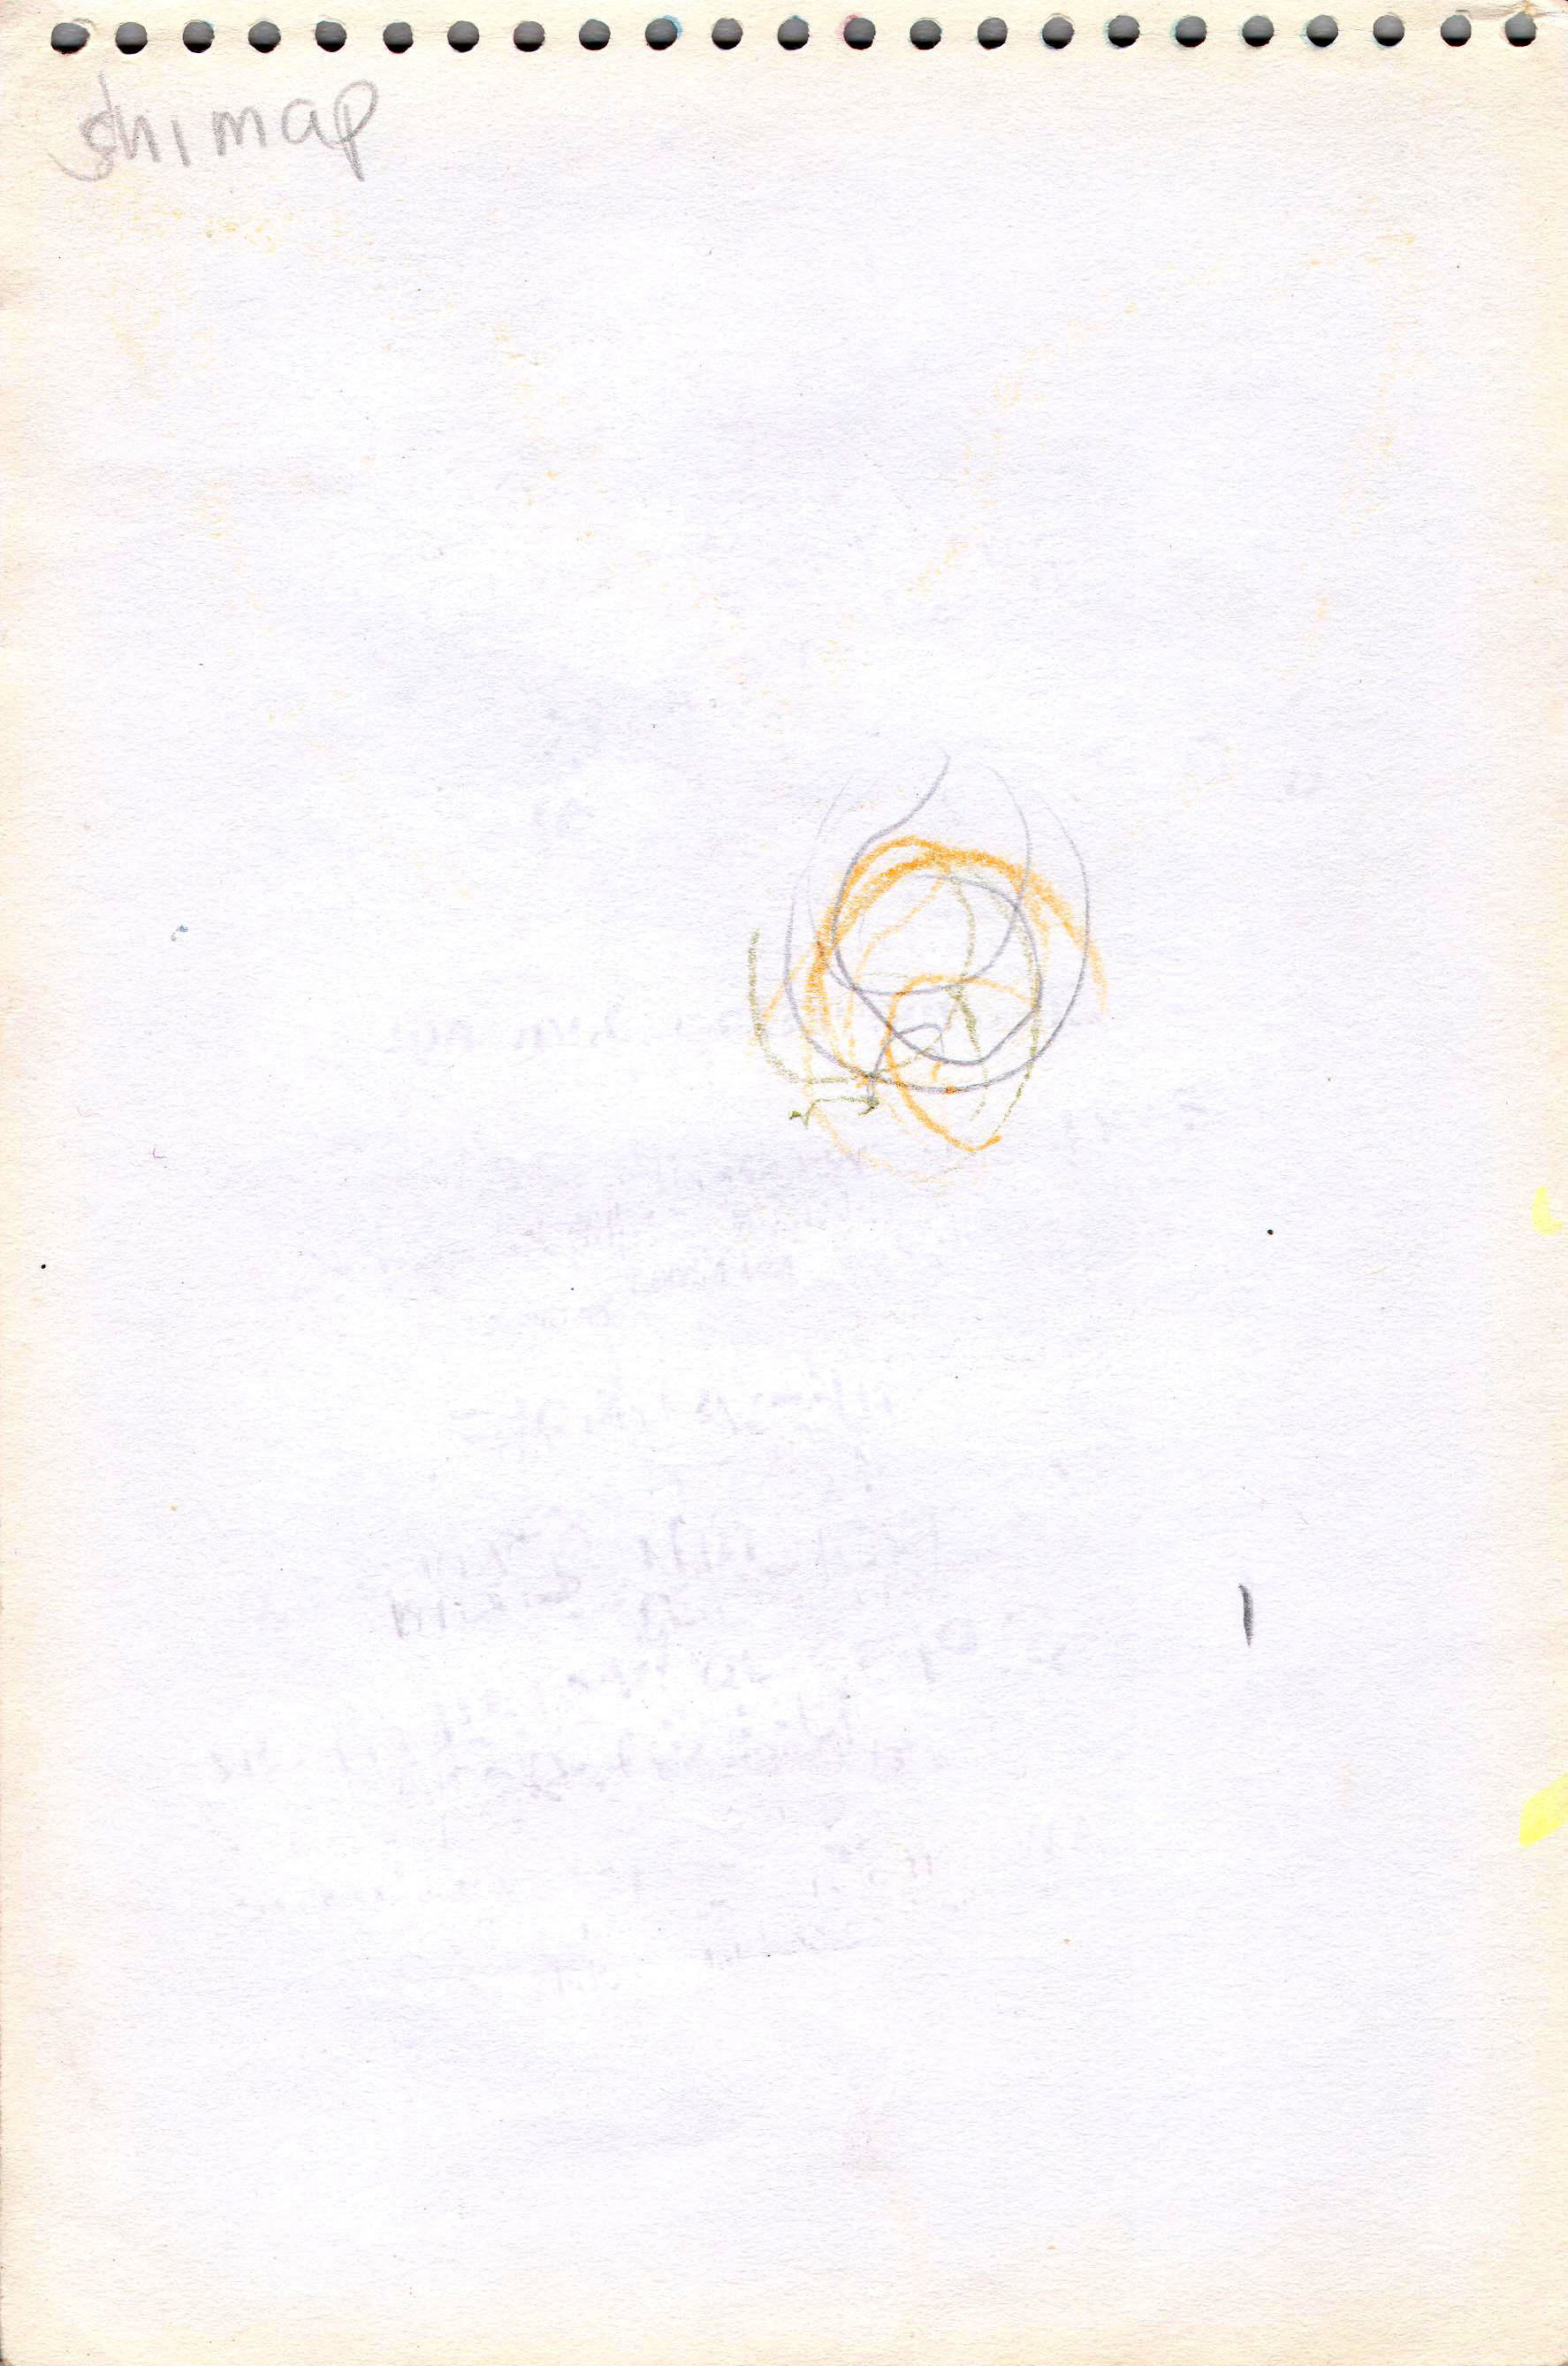 Sketches from the source by a Philippine shaman Bong Delatorre 19